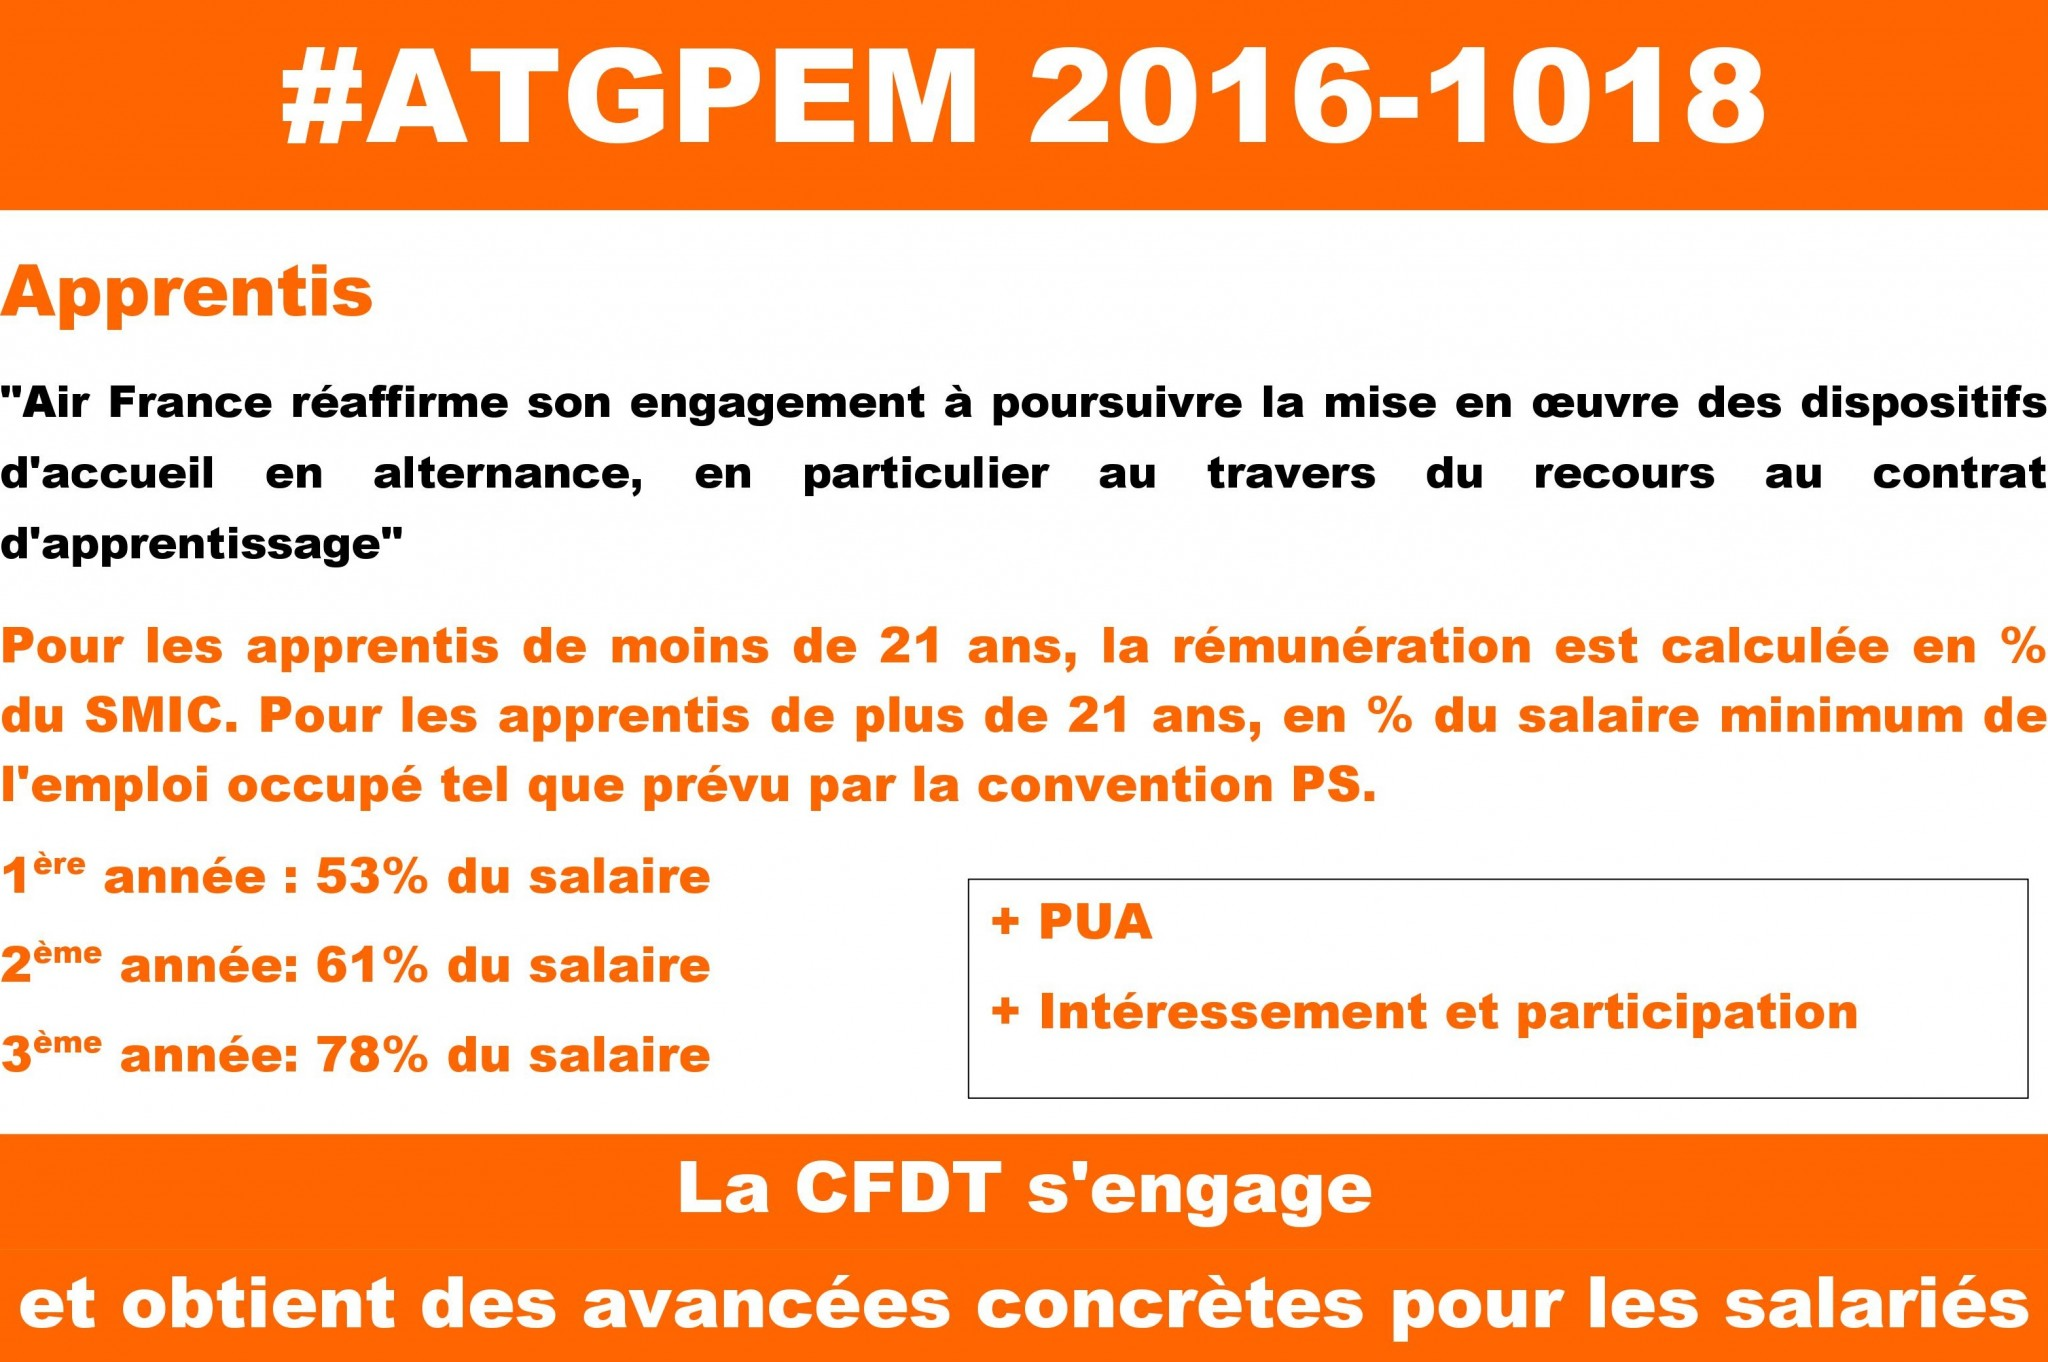 communication ATGPEM 2016 2